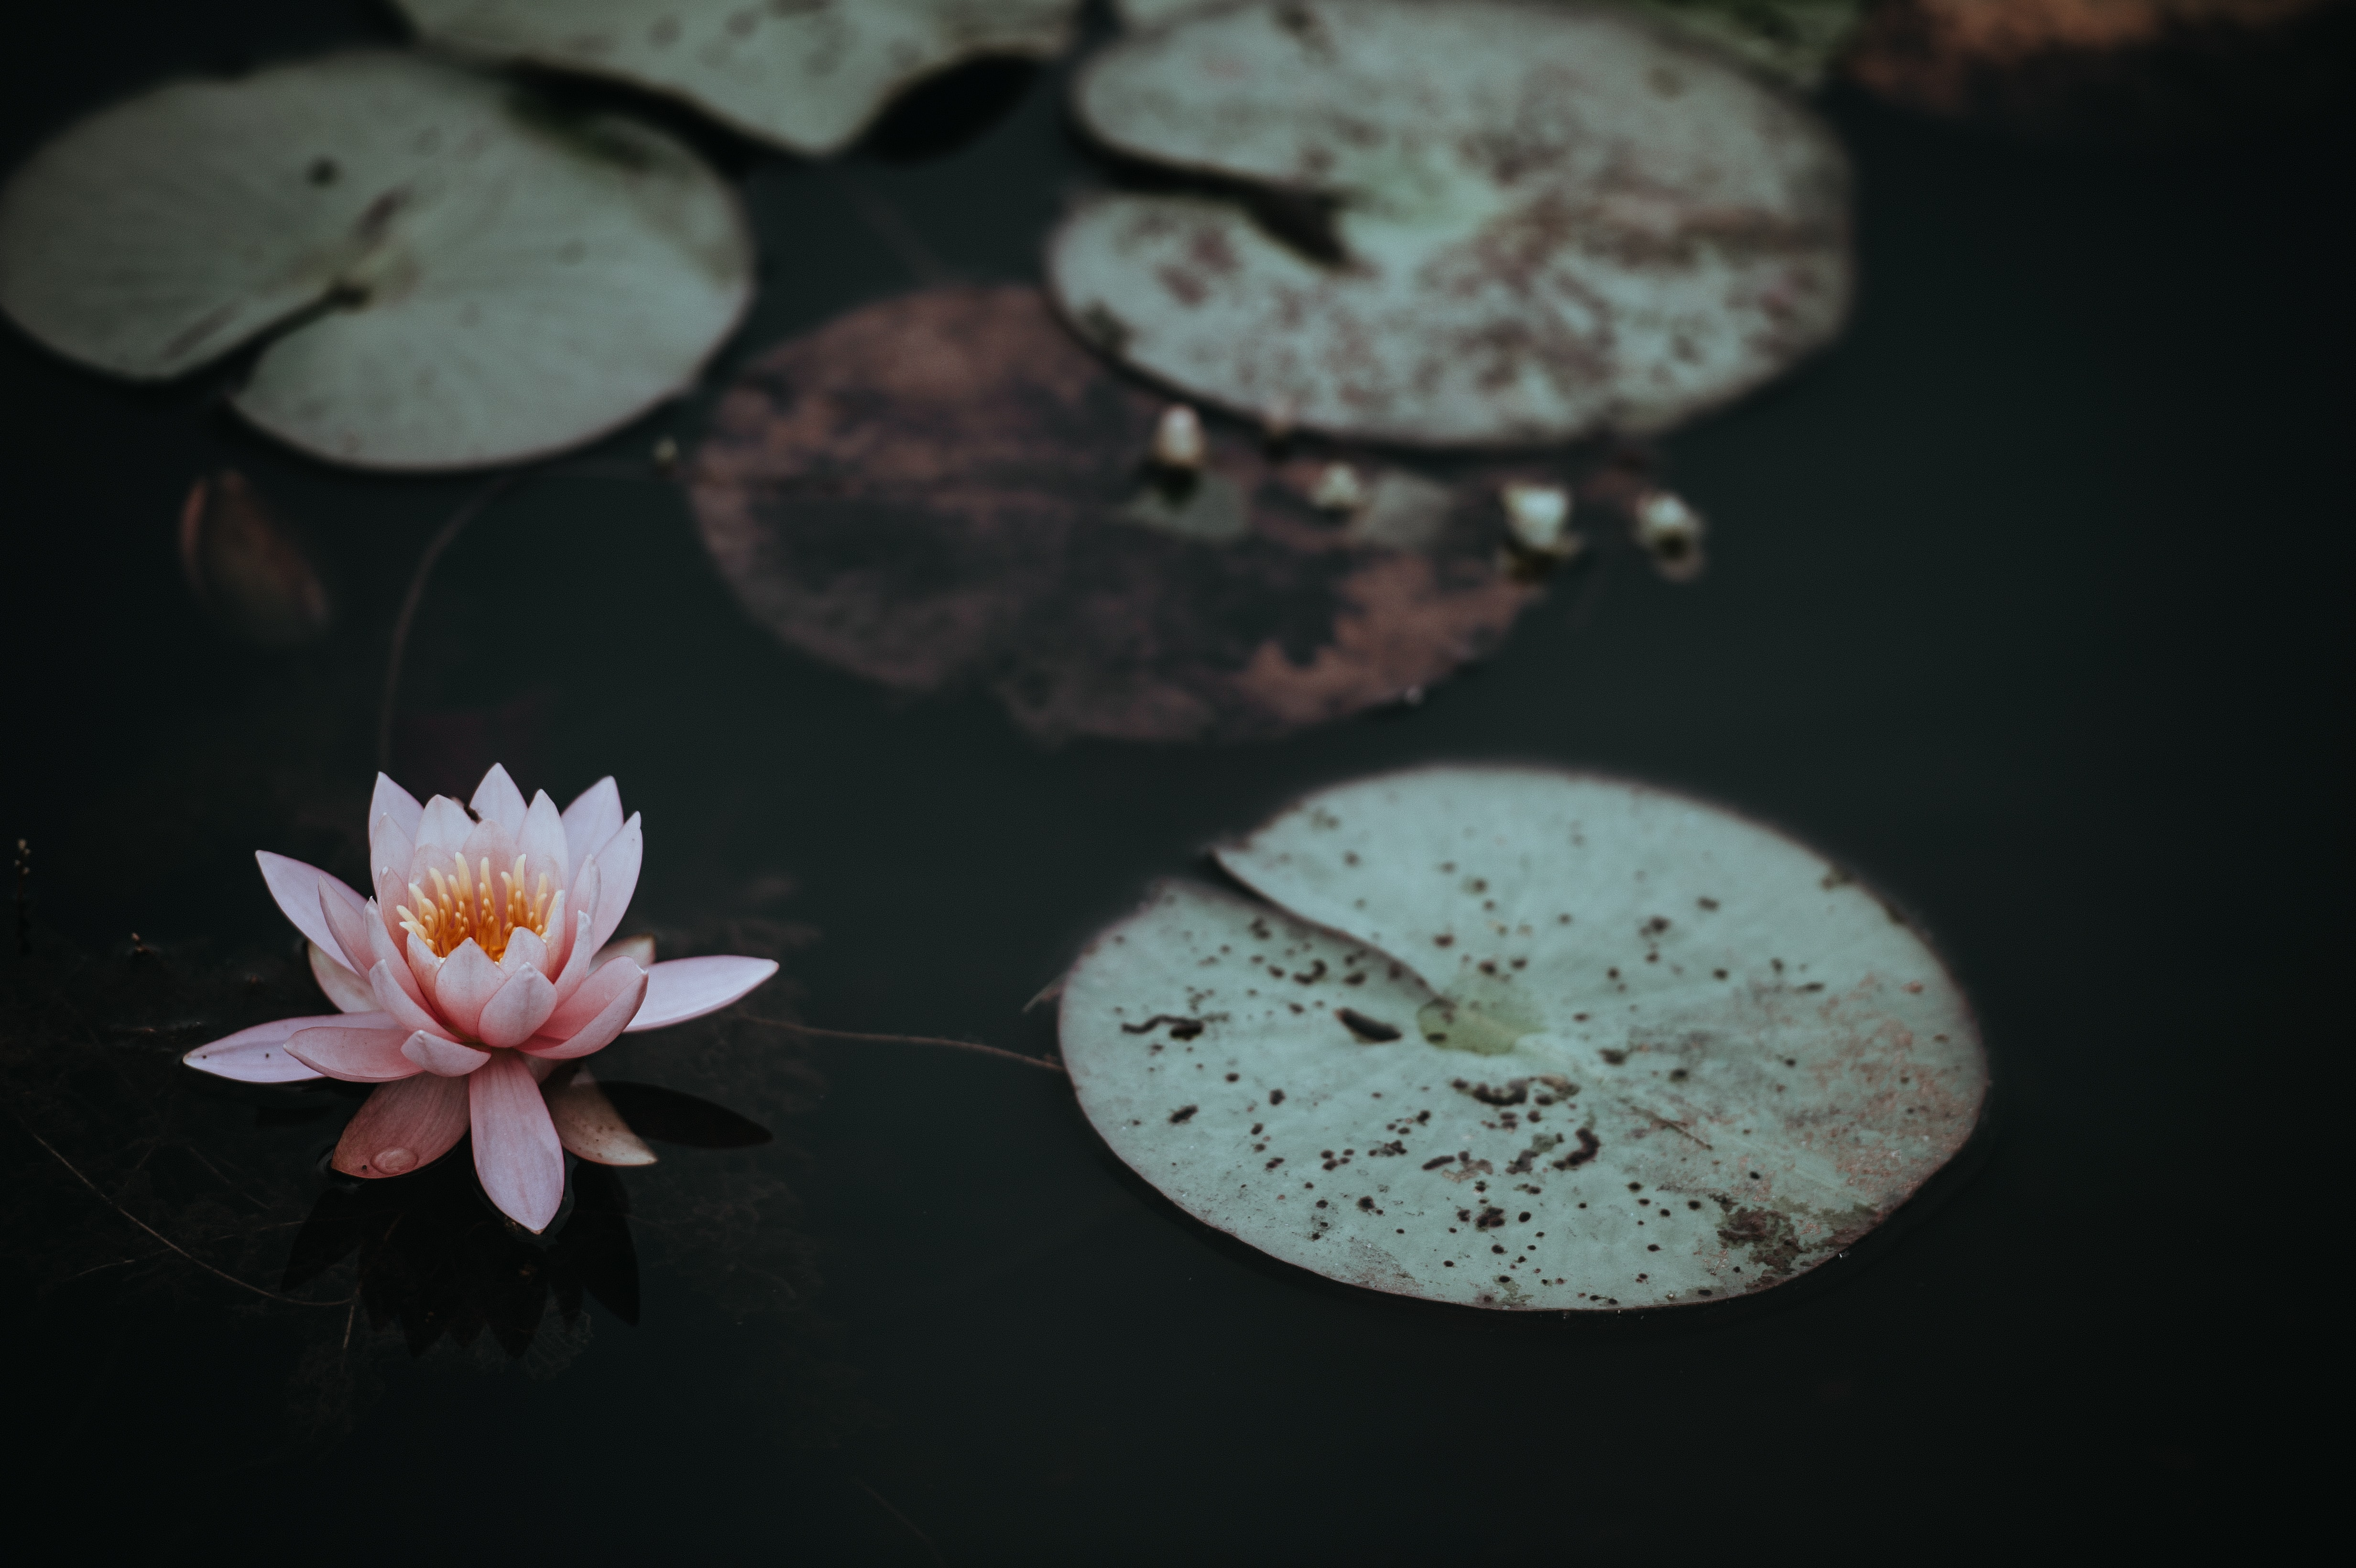 A pink water lily next to lily pads on the dark surface of a pond